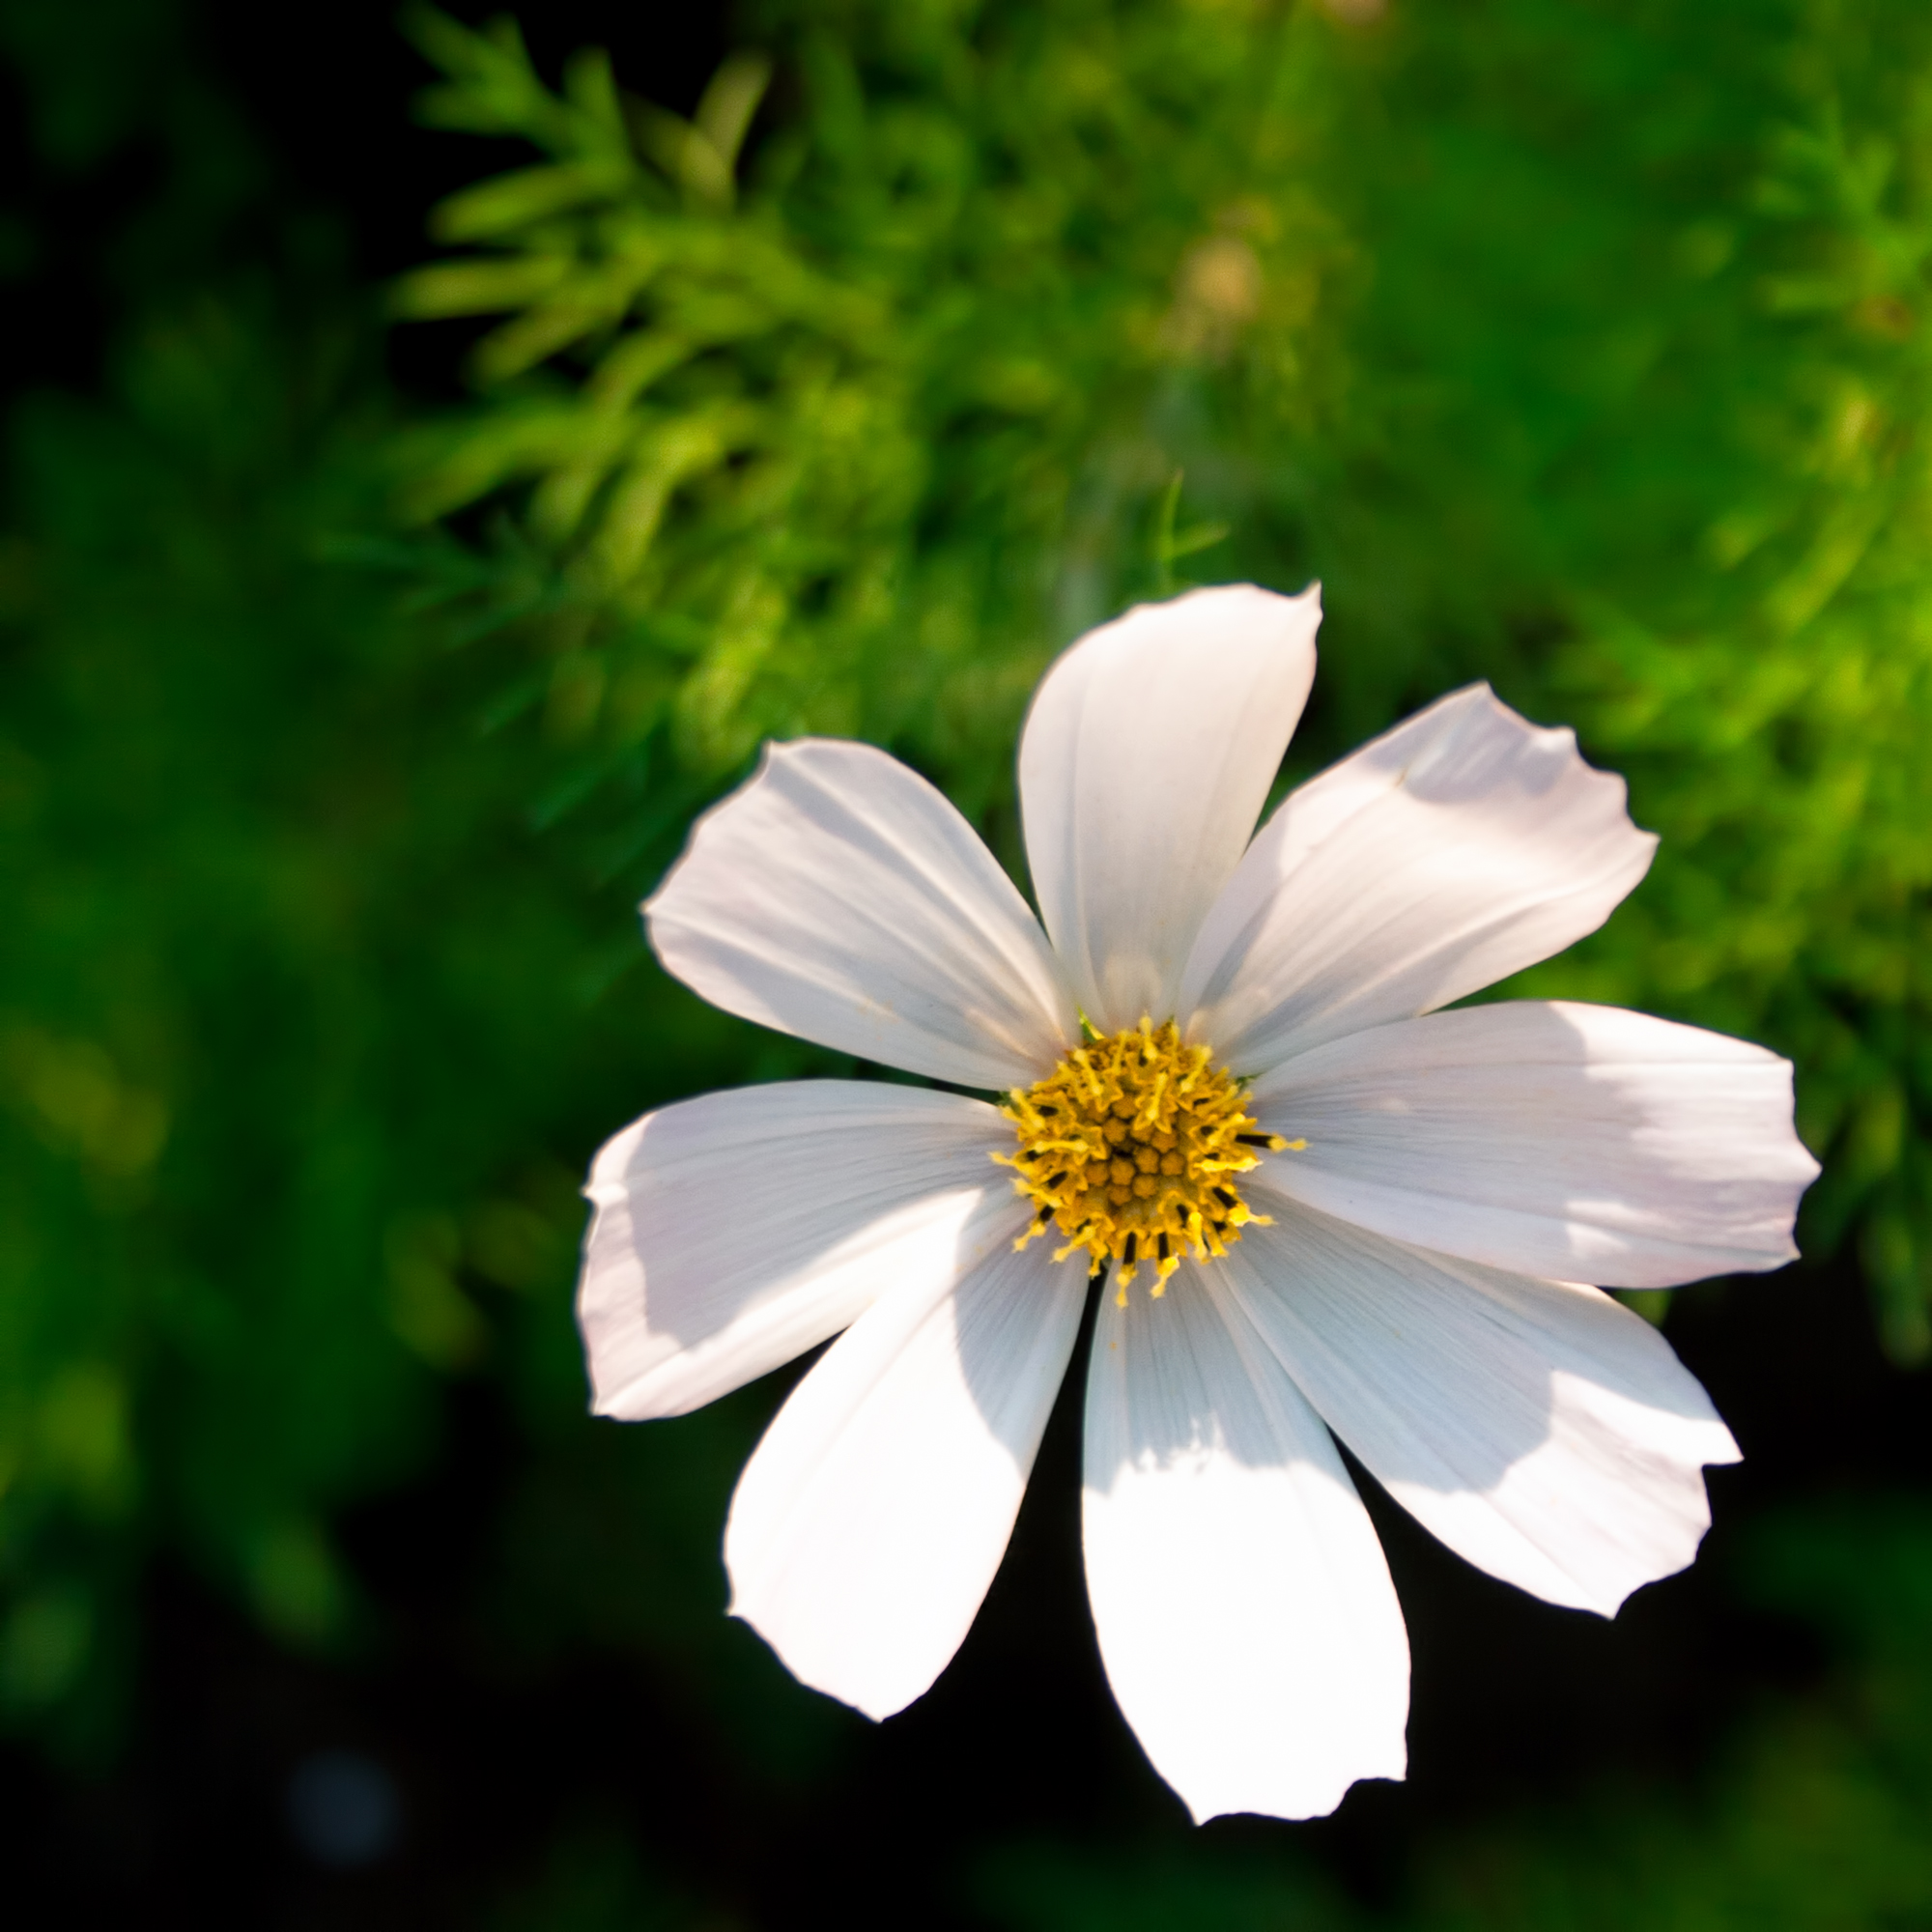 Free Photo White Flower Macro Herb Outdoors Free Download